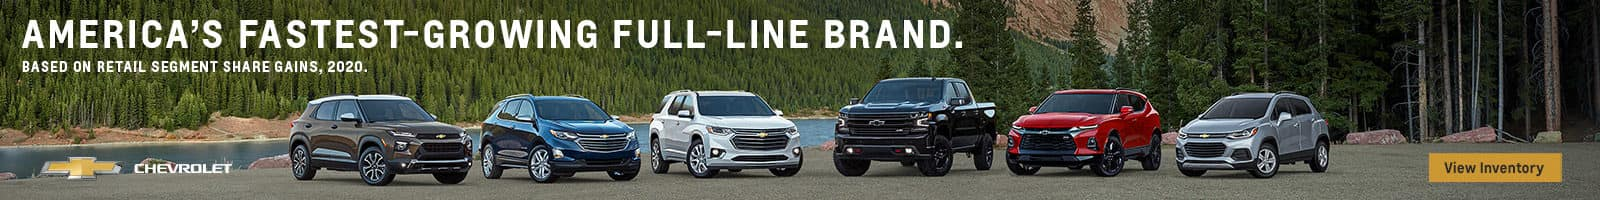 Fastest Growing Brand, Chevrolet